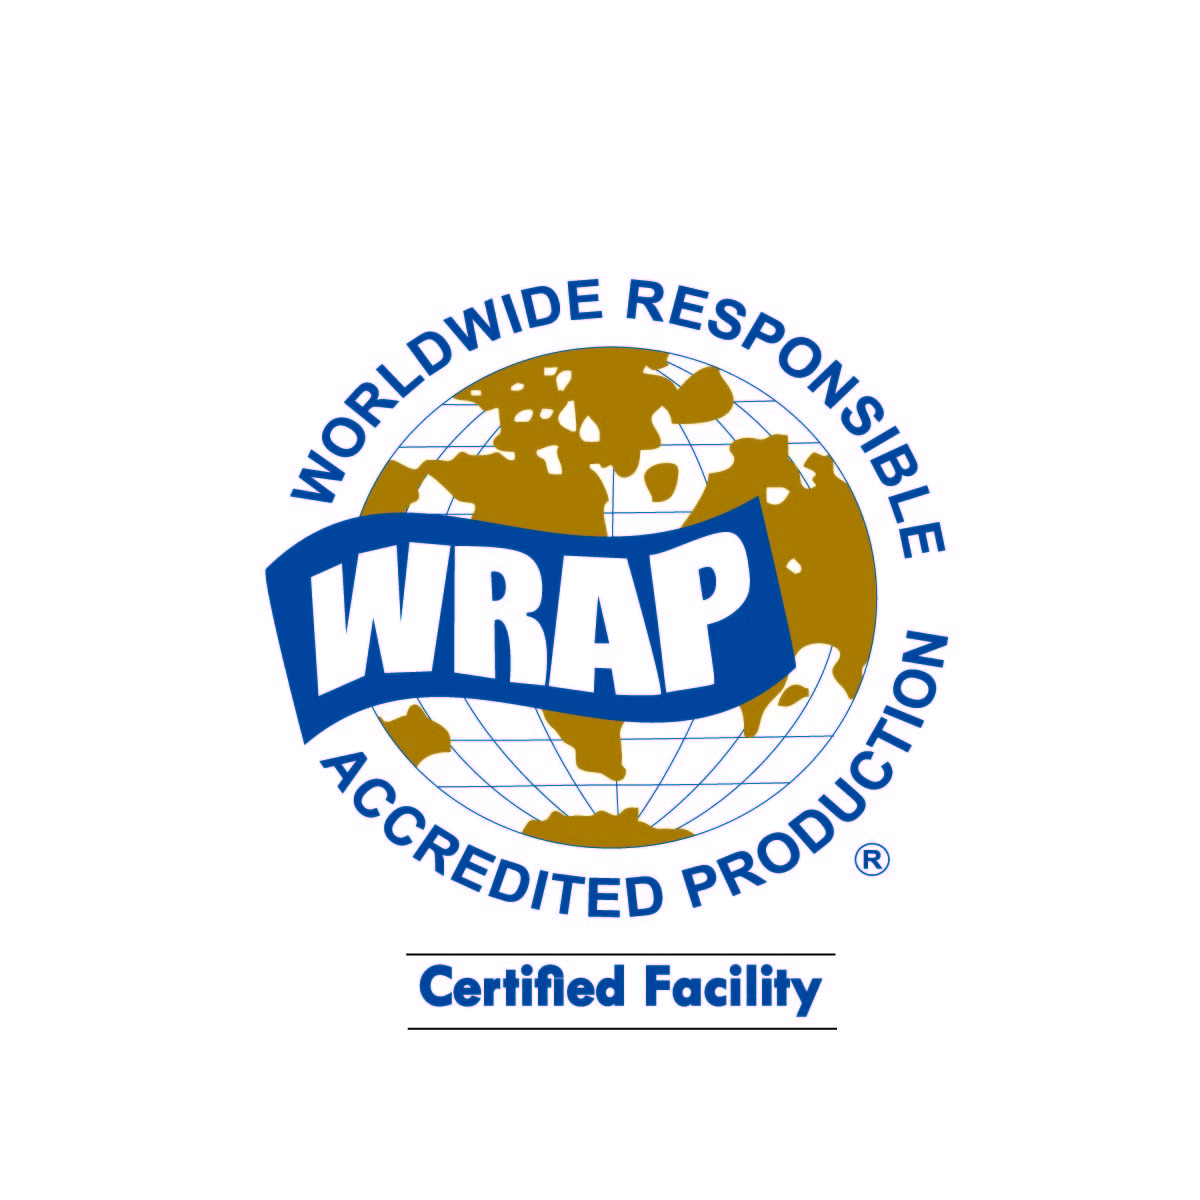 JC Industries is a WRAP Certified Facility